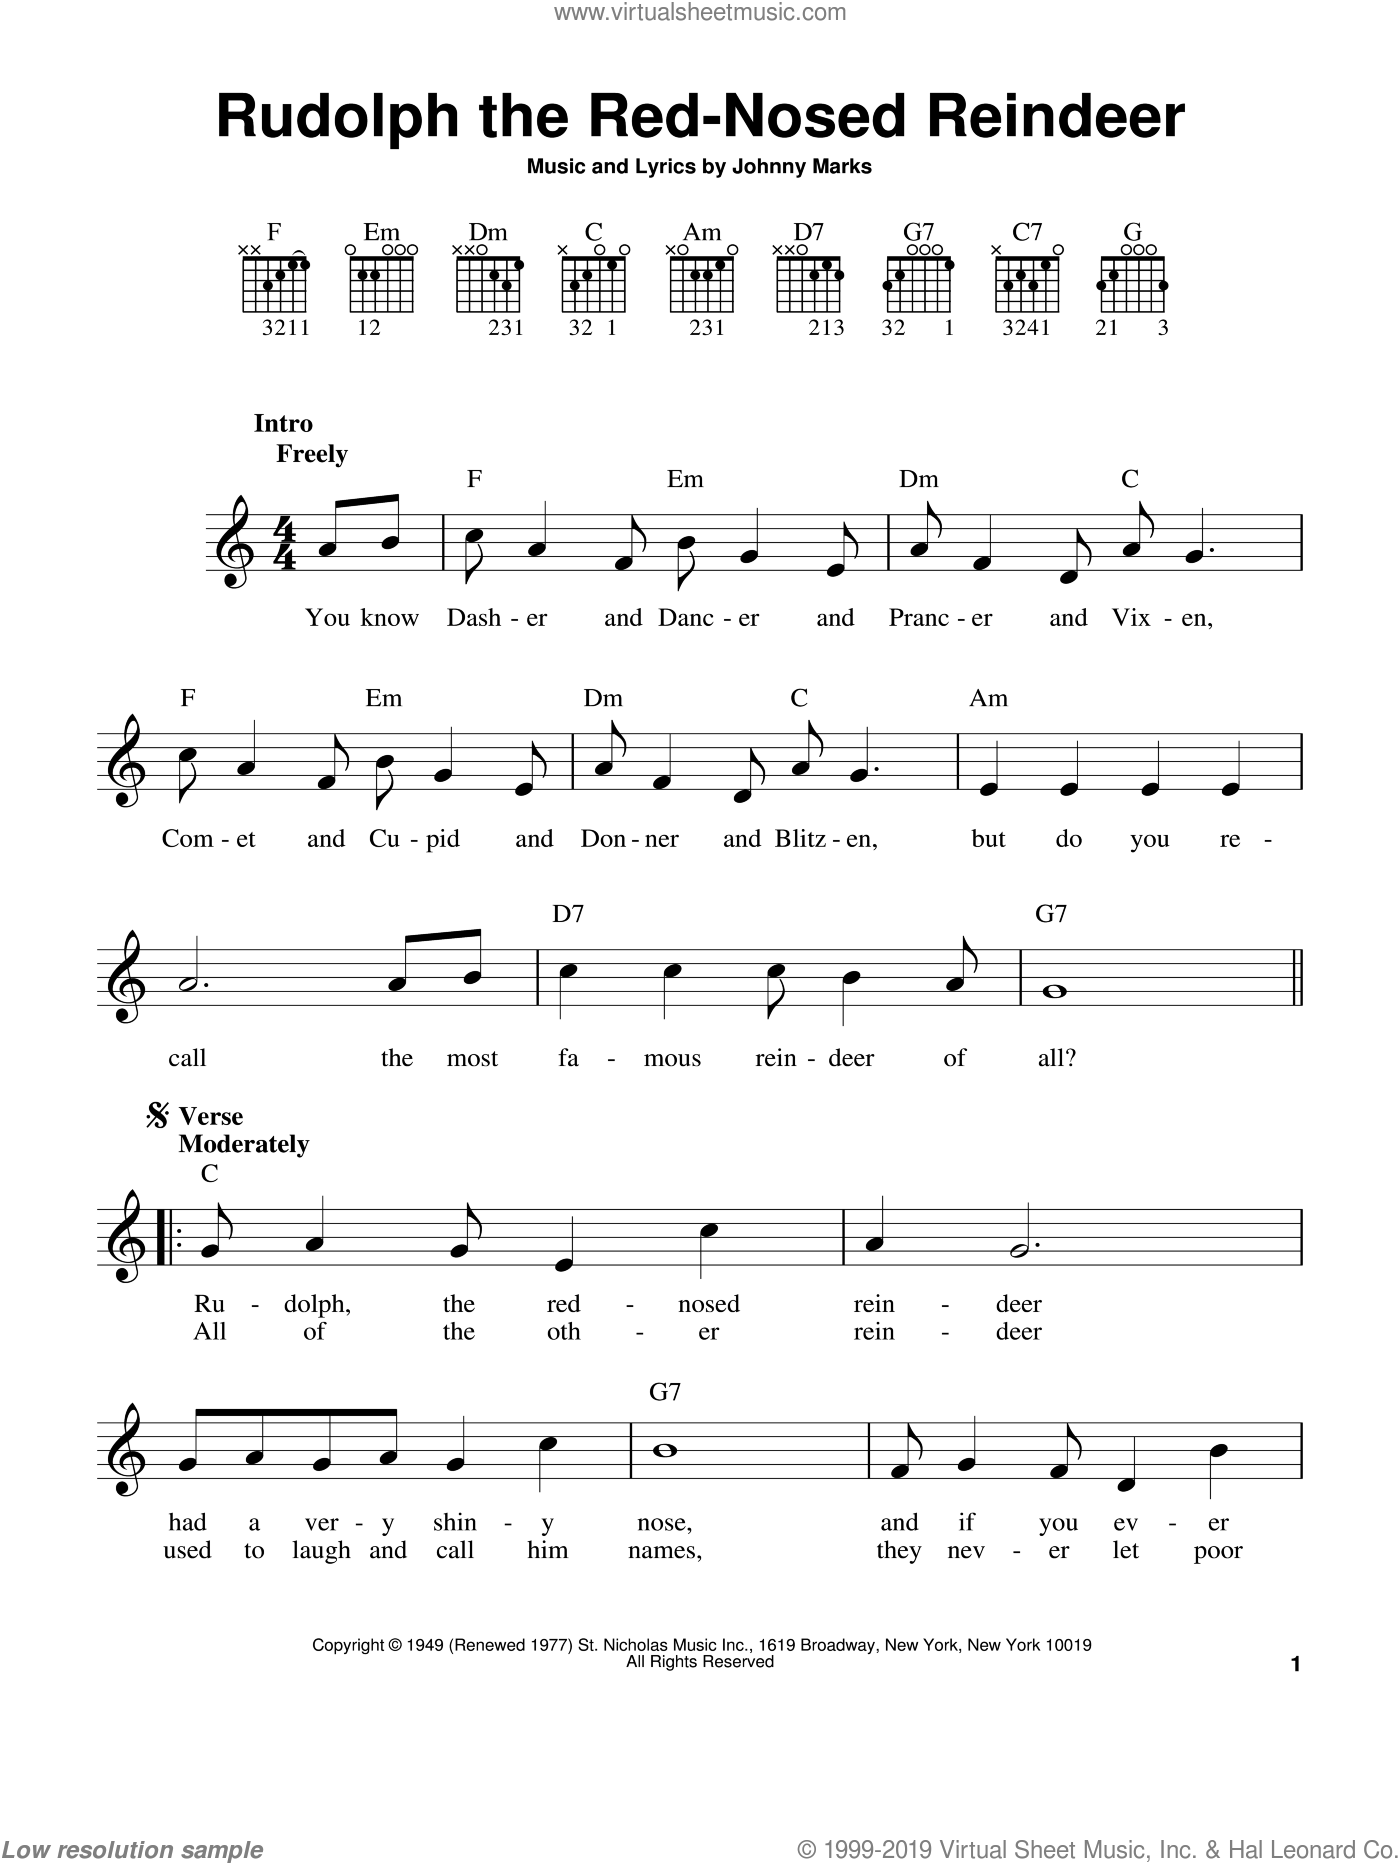 Rudolph The Red-Nosed Reindeer sheet music for guitar solo (chords) by Johnny Marks, easy guitar (chords)